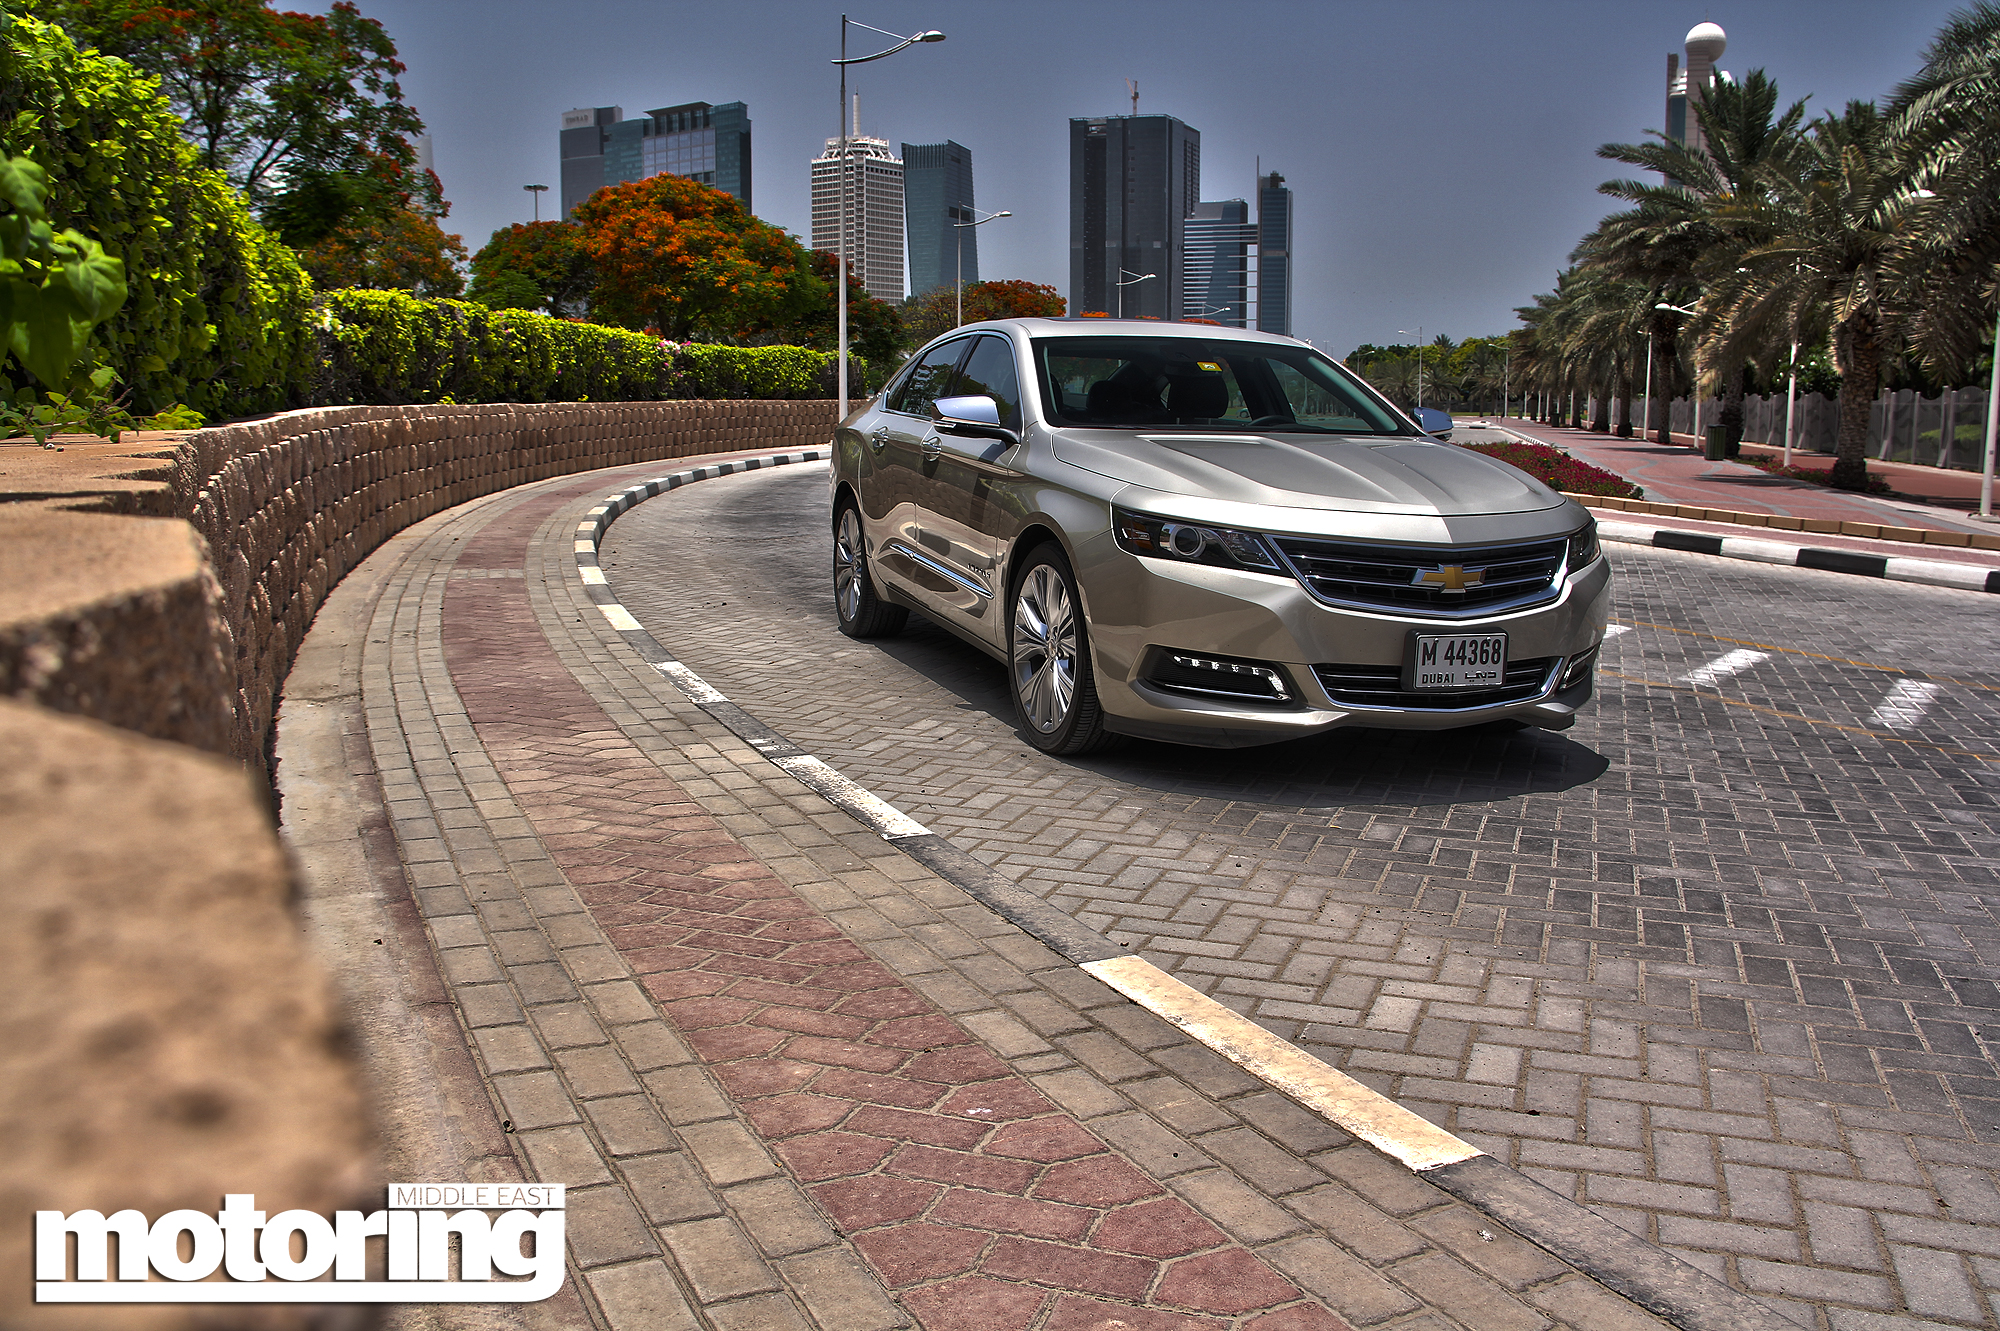 2014 Chevrolet Impala Review Motoring Middle East Car